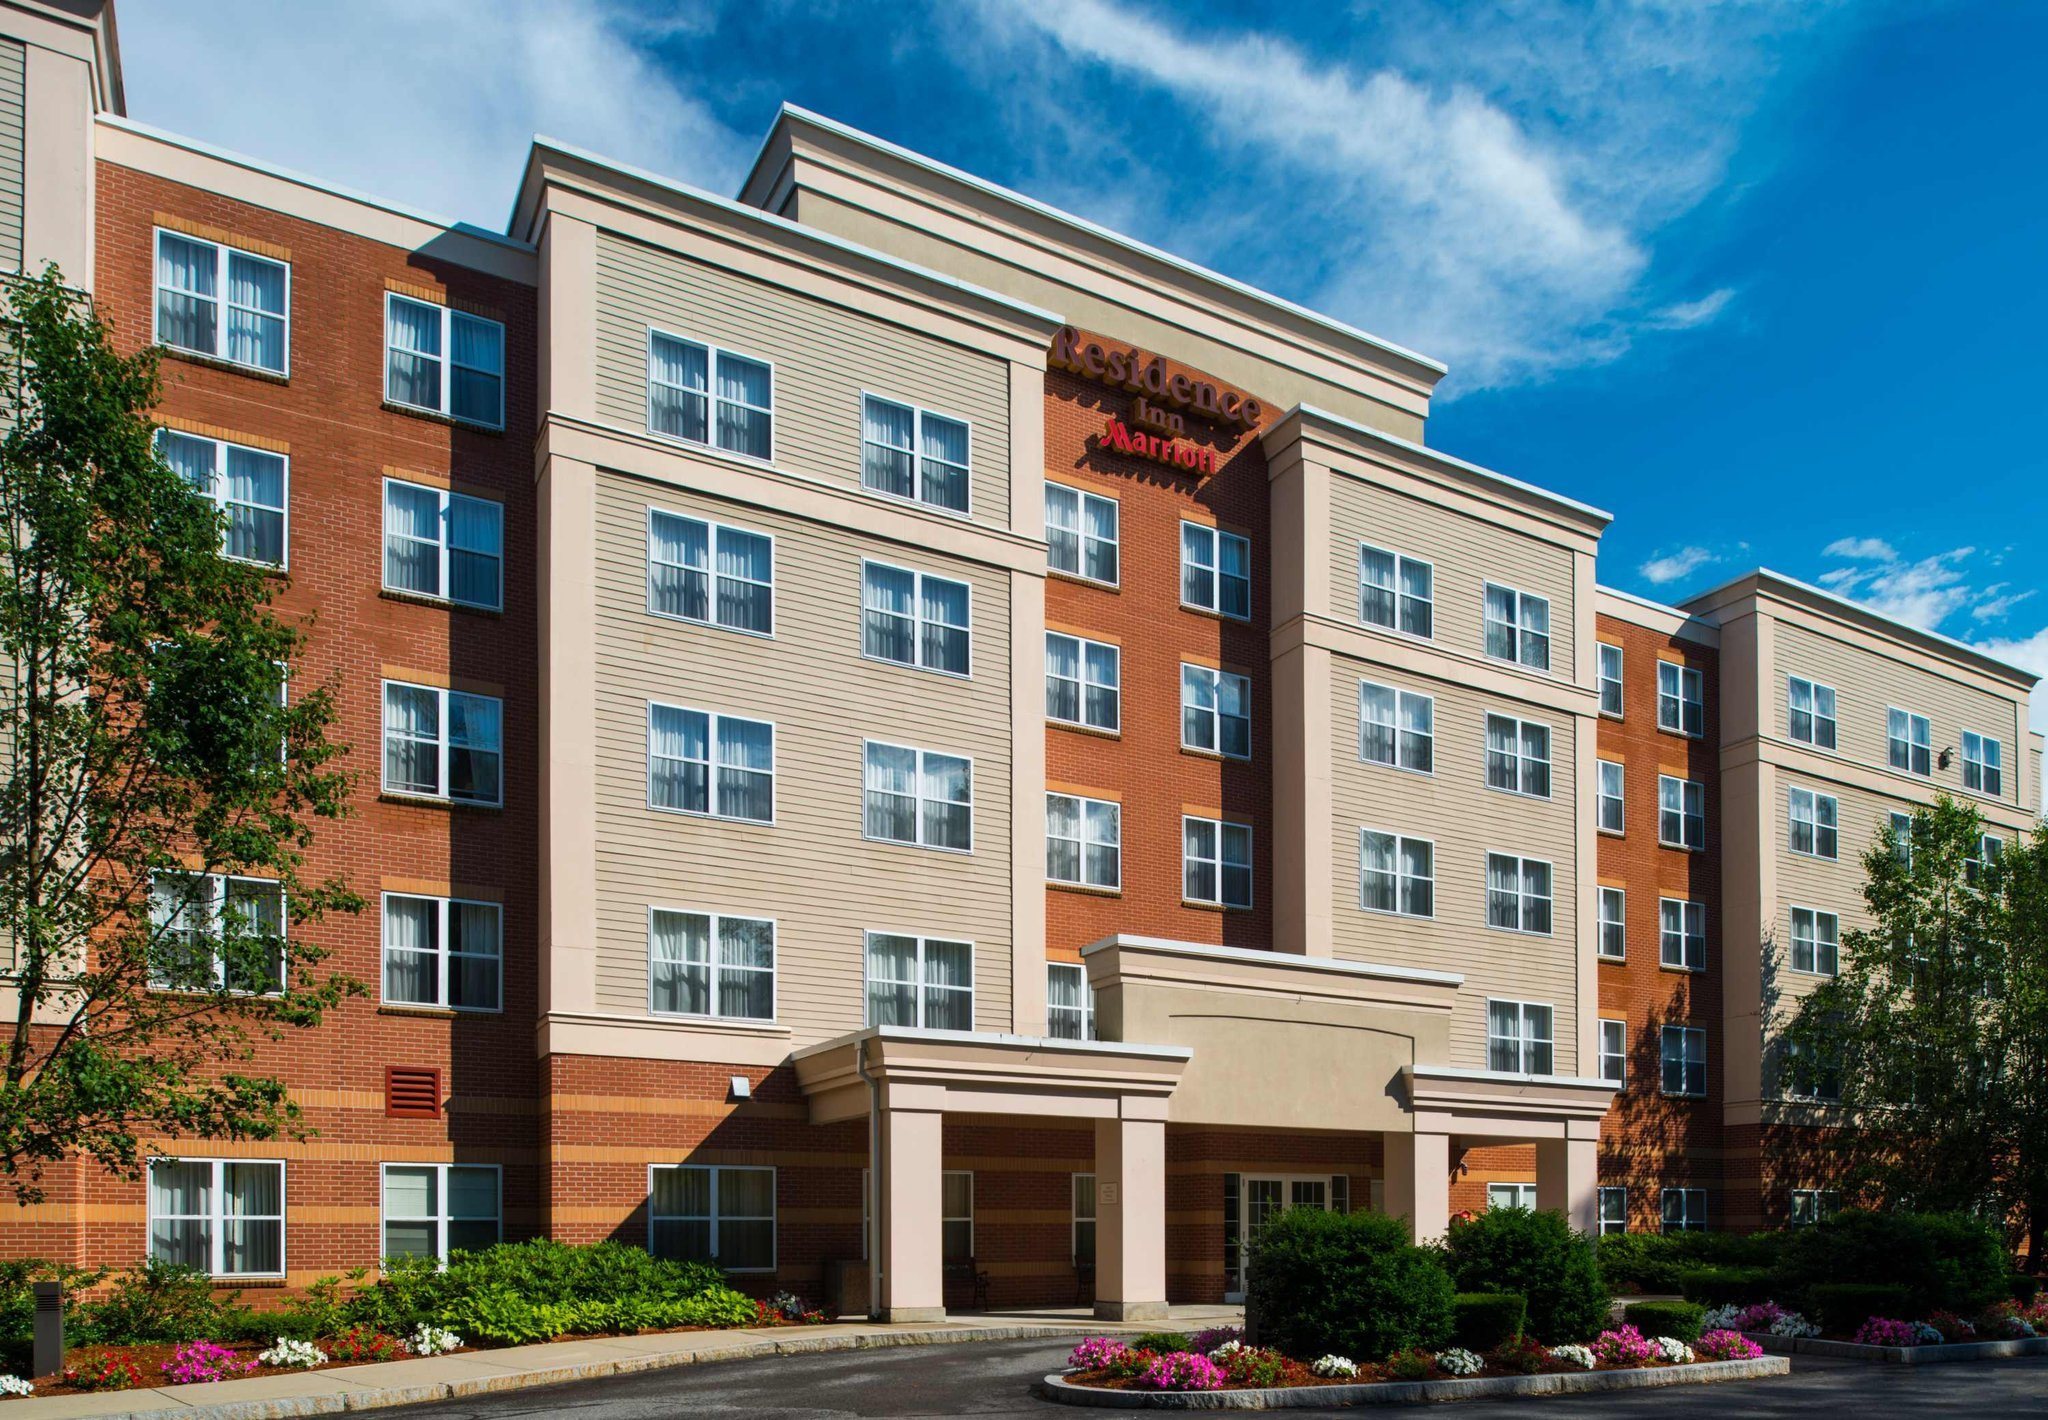 Residence Inn Boston Framingham